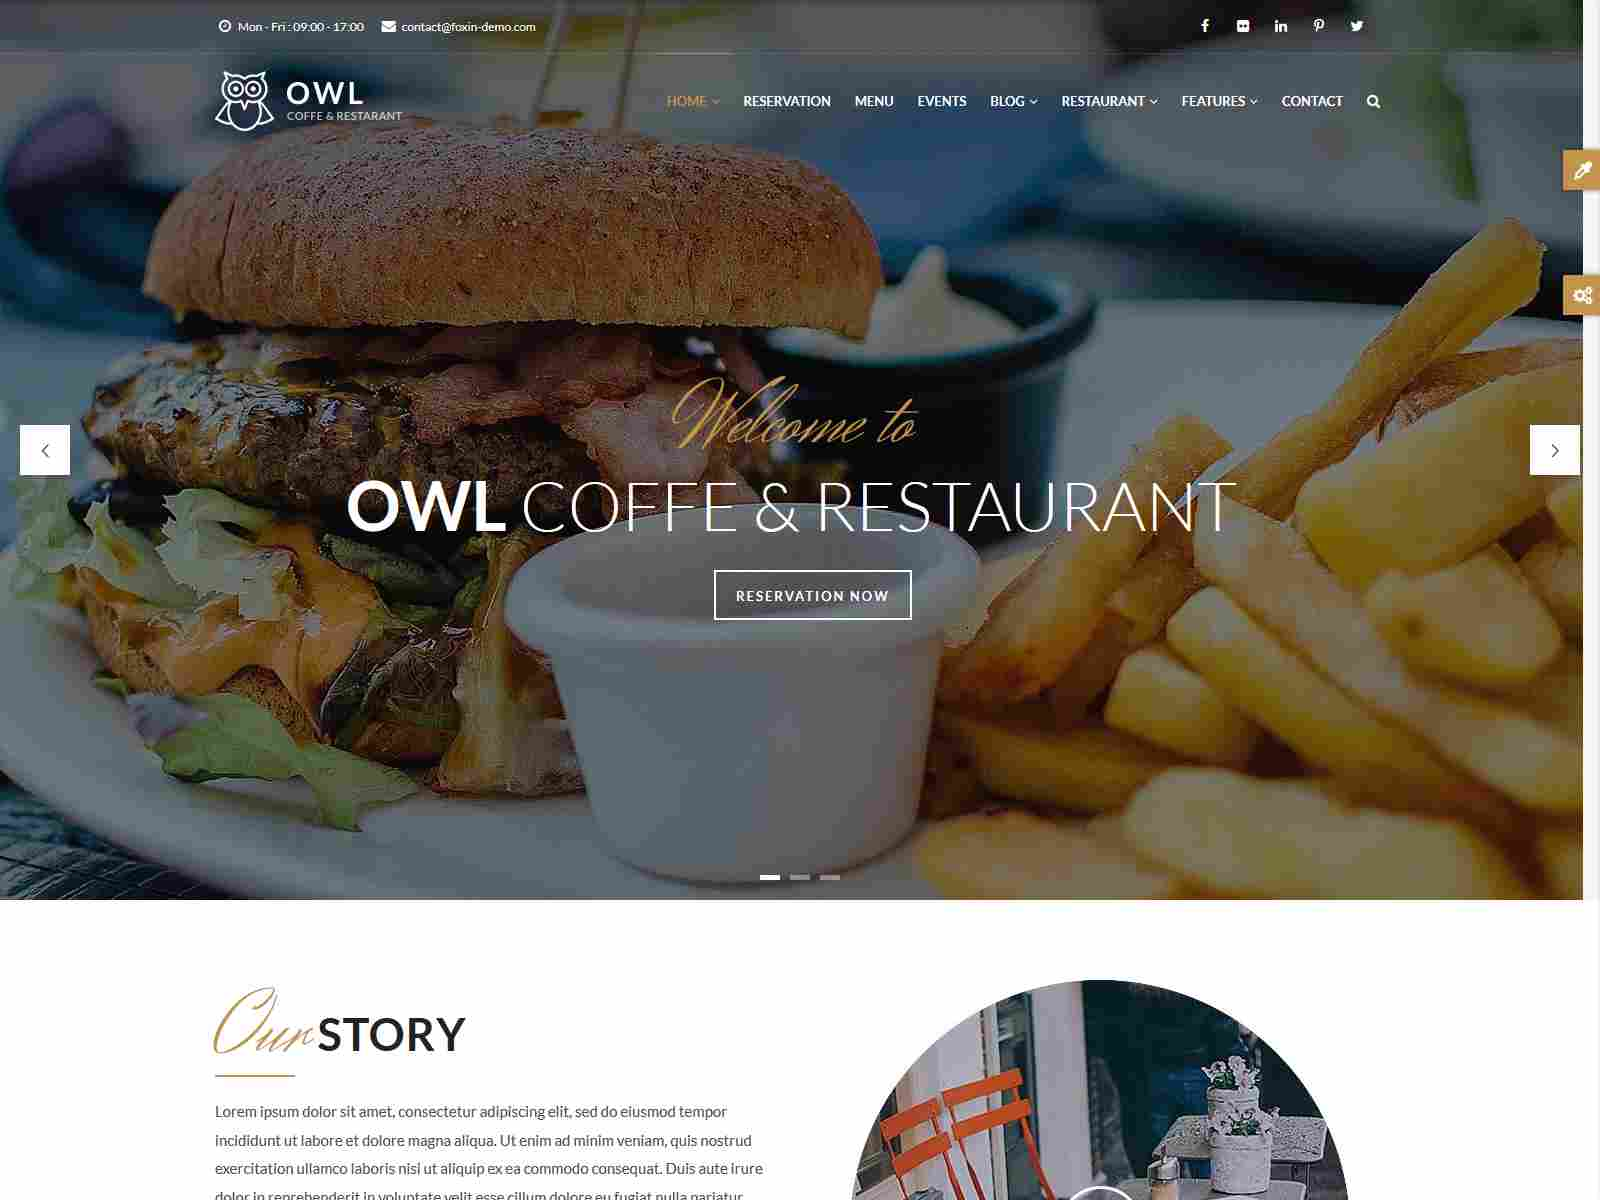 OWL - Cafe & Restaurant Drupal 8.8 Theme